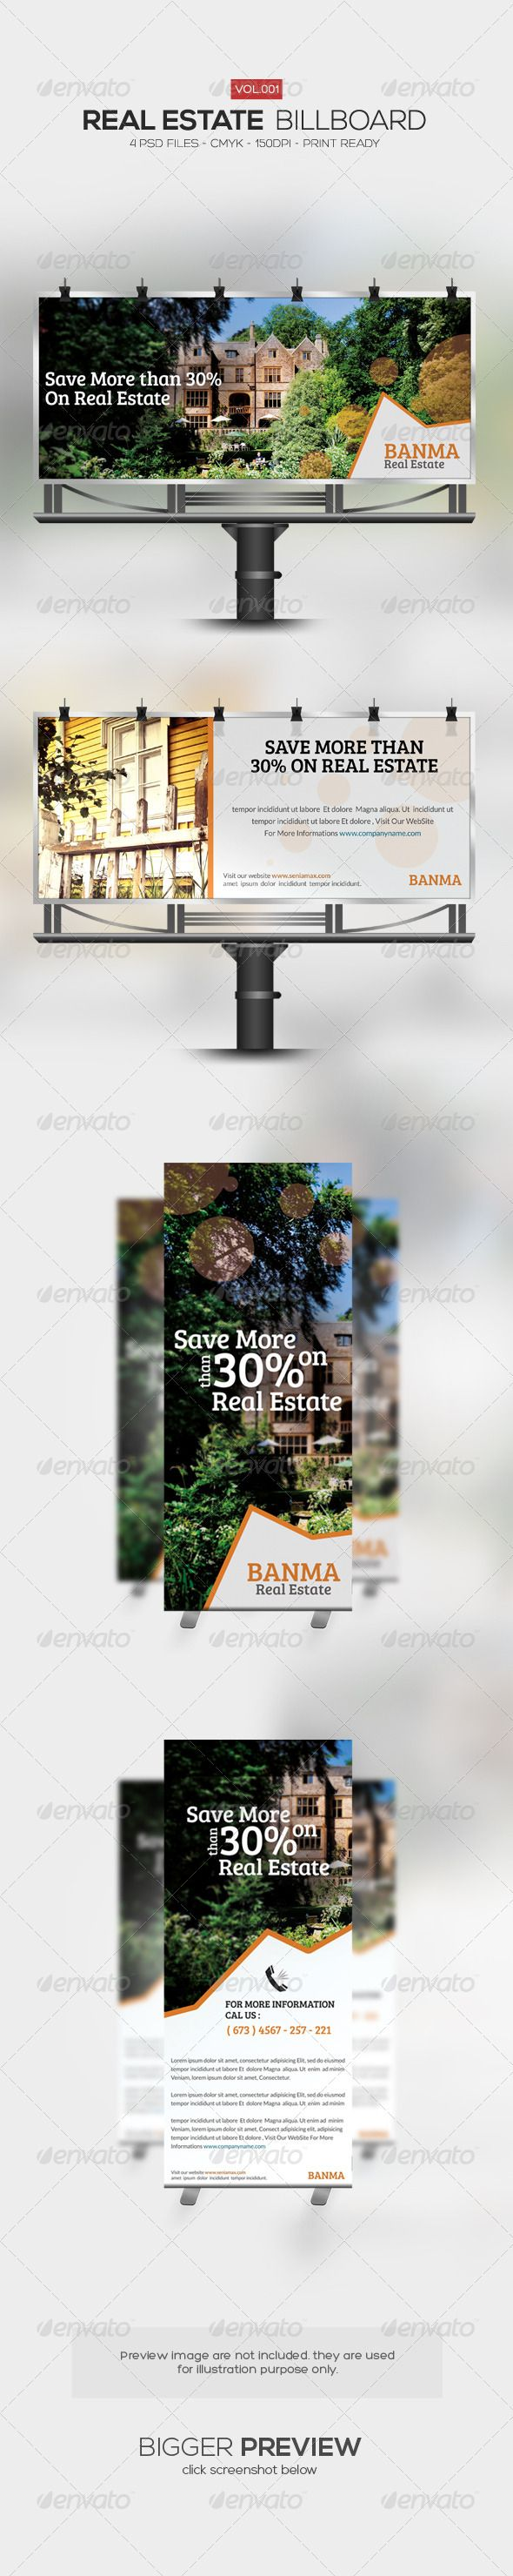 Real Estate Billboard 001 — Photoshop PSD #real-estate #real estate • Available here → https://graphicriver.net/item/real-estate-billboard-001/5896538?ref=pxcr